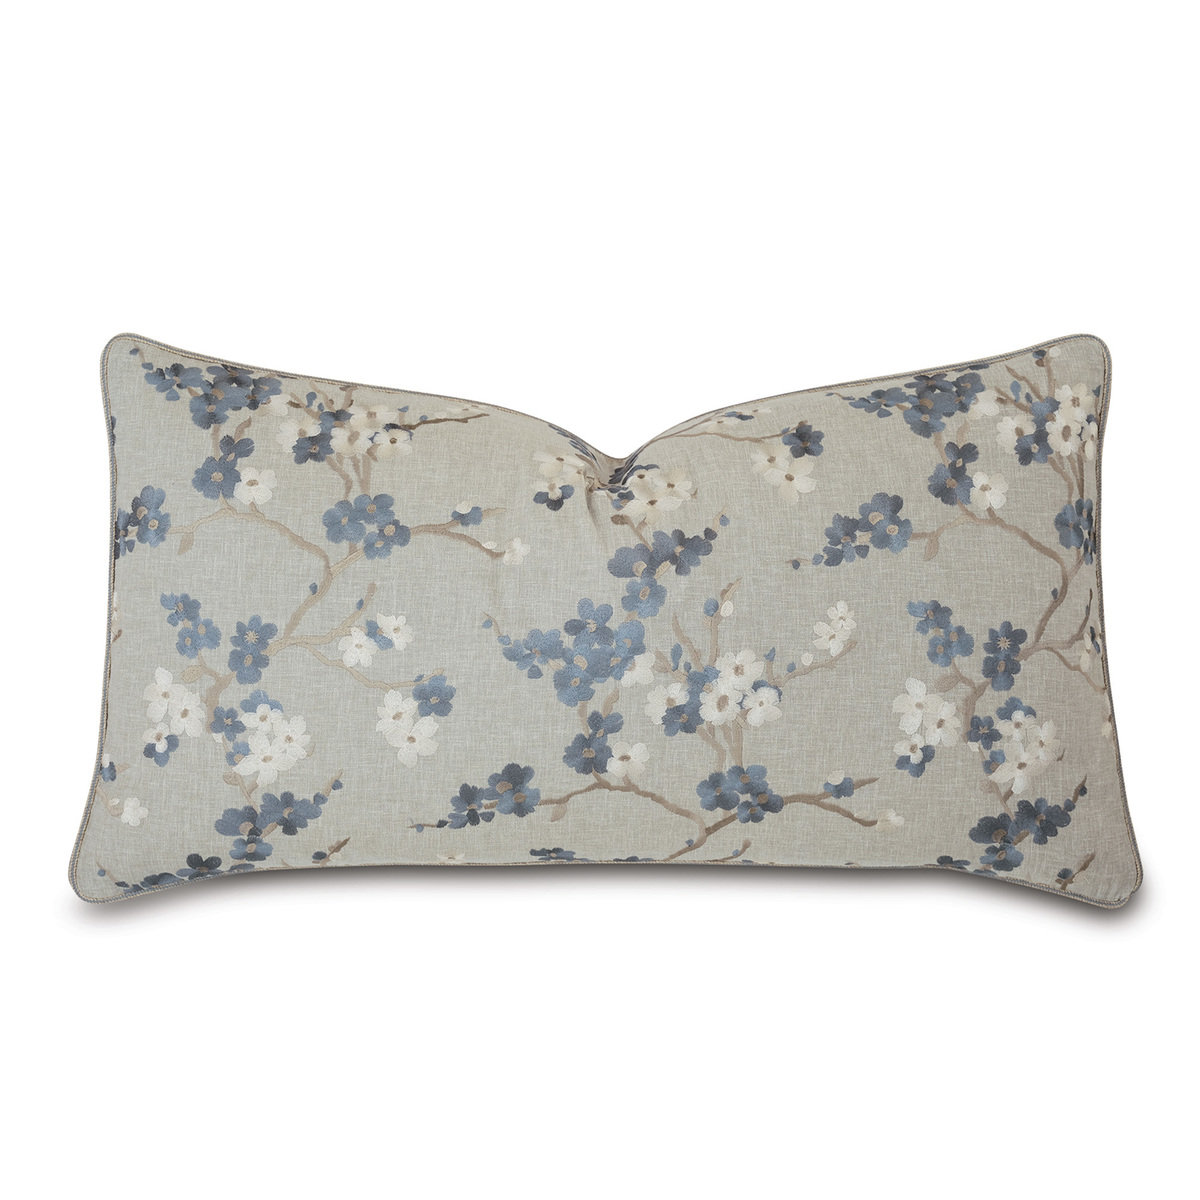 Alexa hampton eastern accent bedding baynes ksh 02 1200 xxx q85